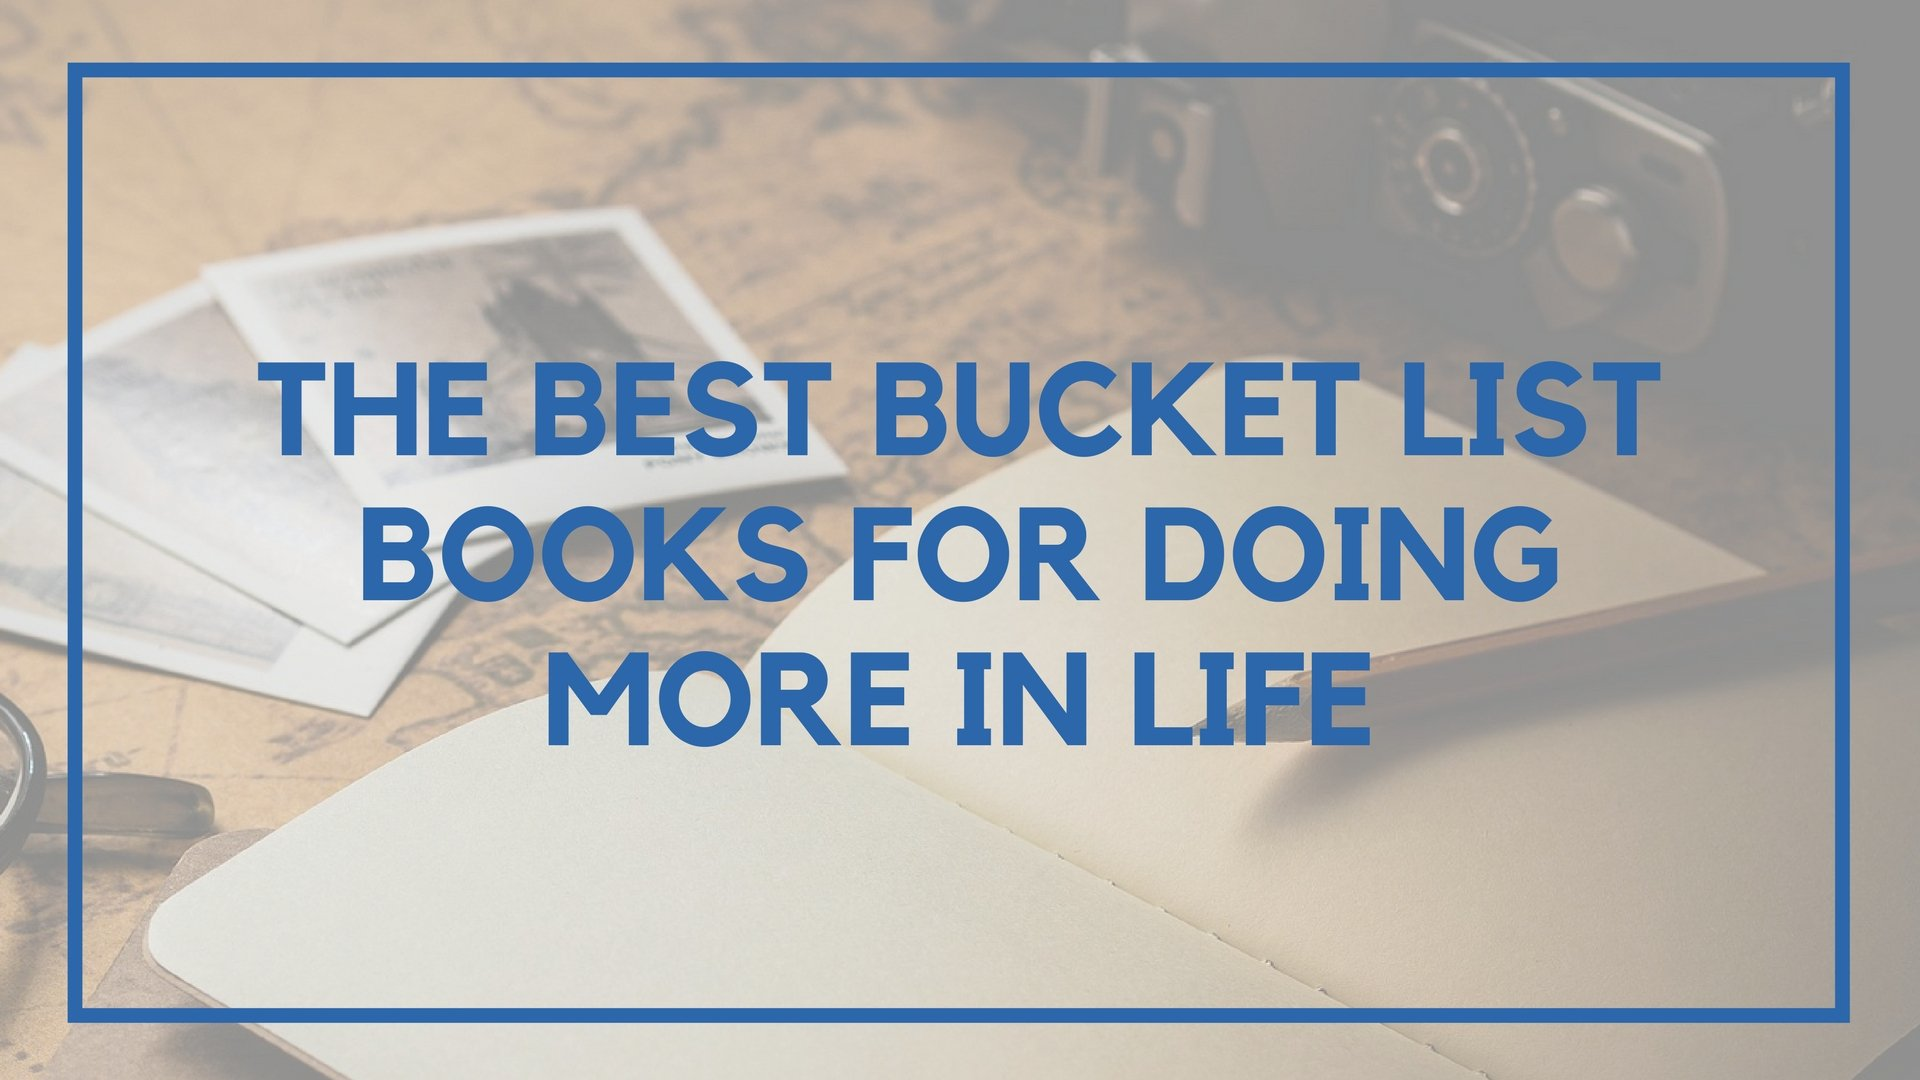 The Best Bucket List Books for Doing More in Life